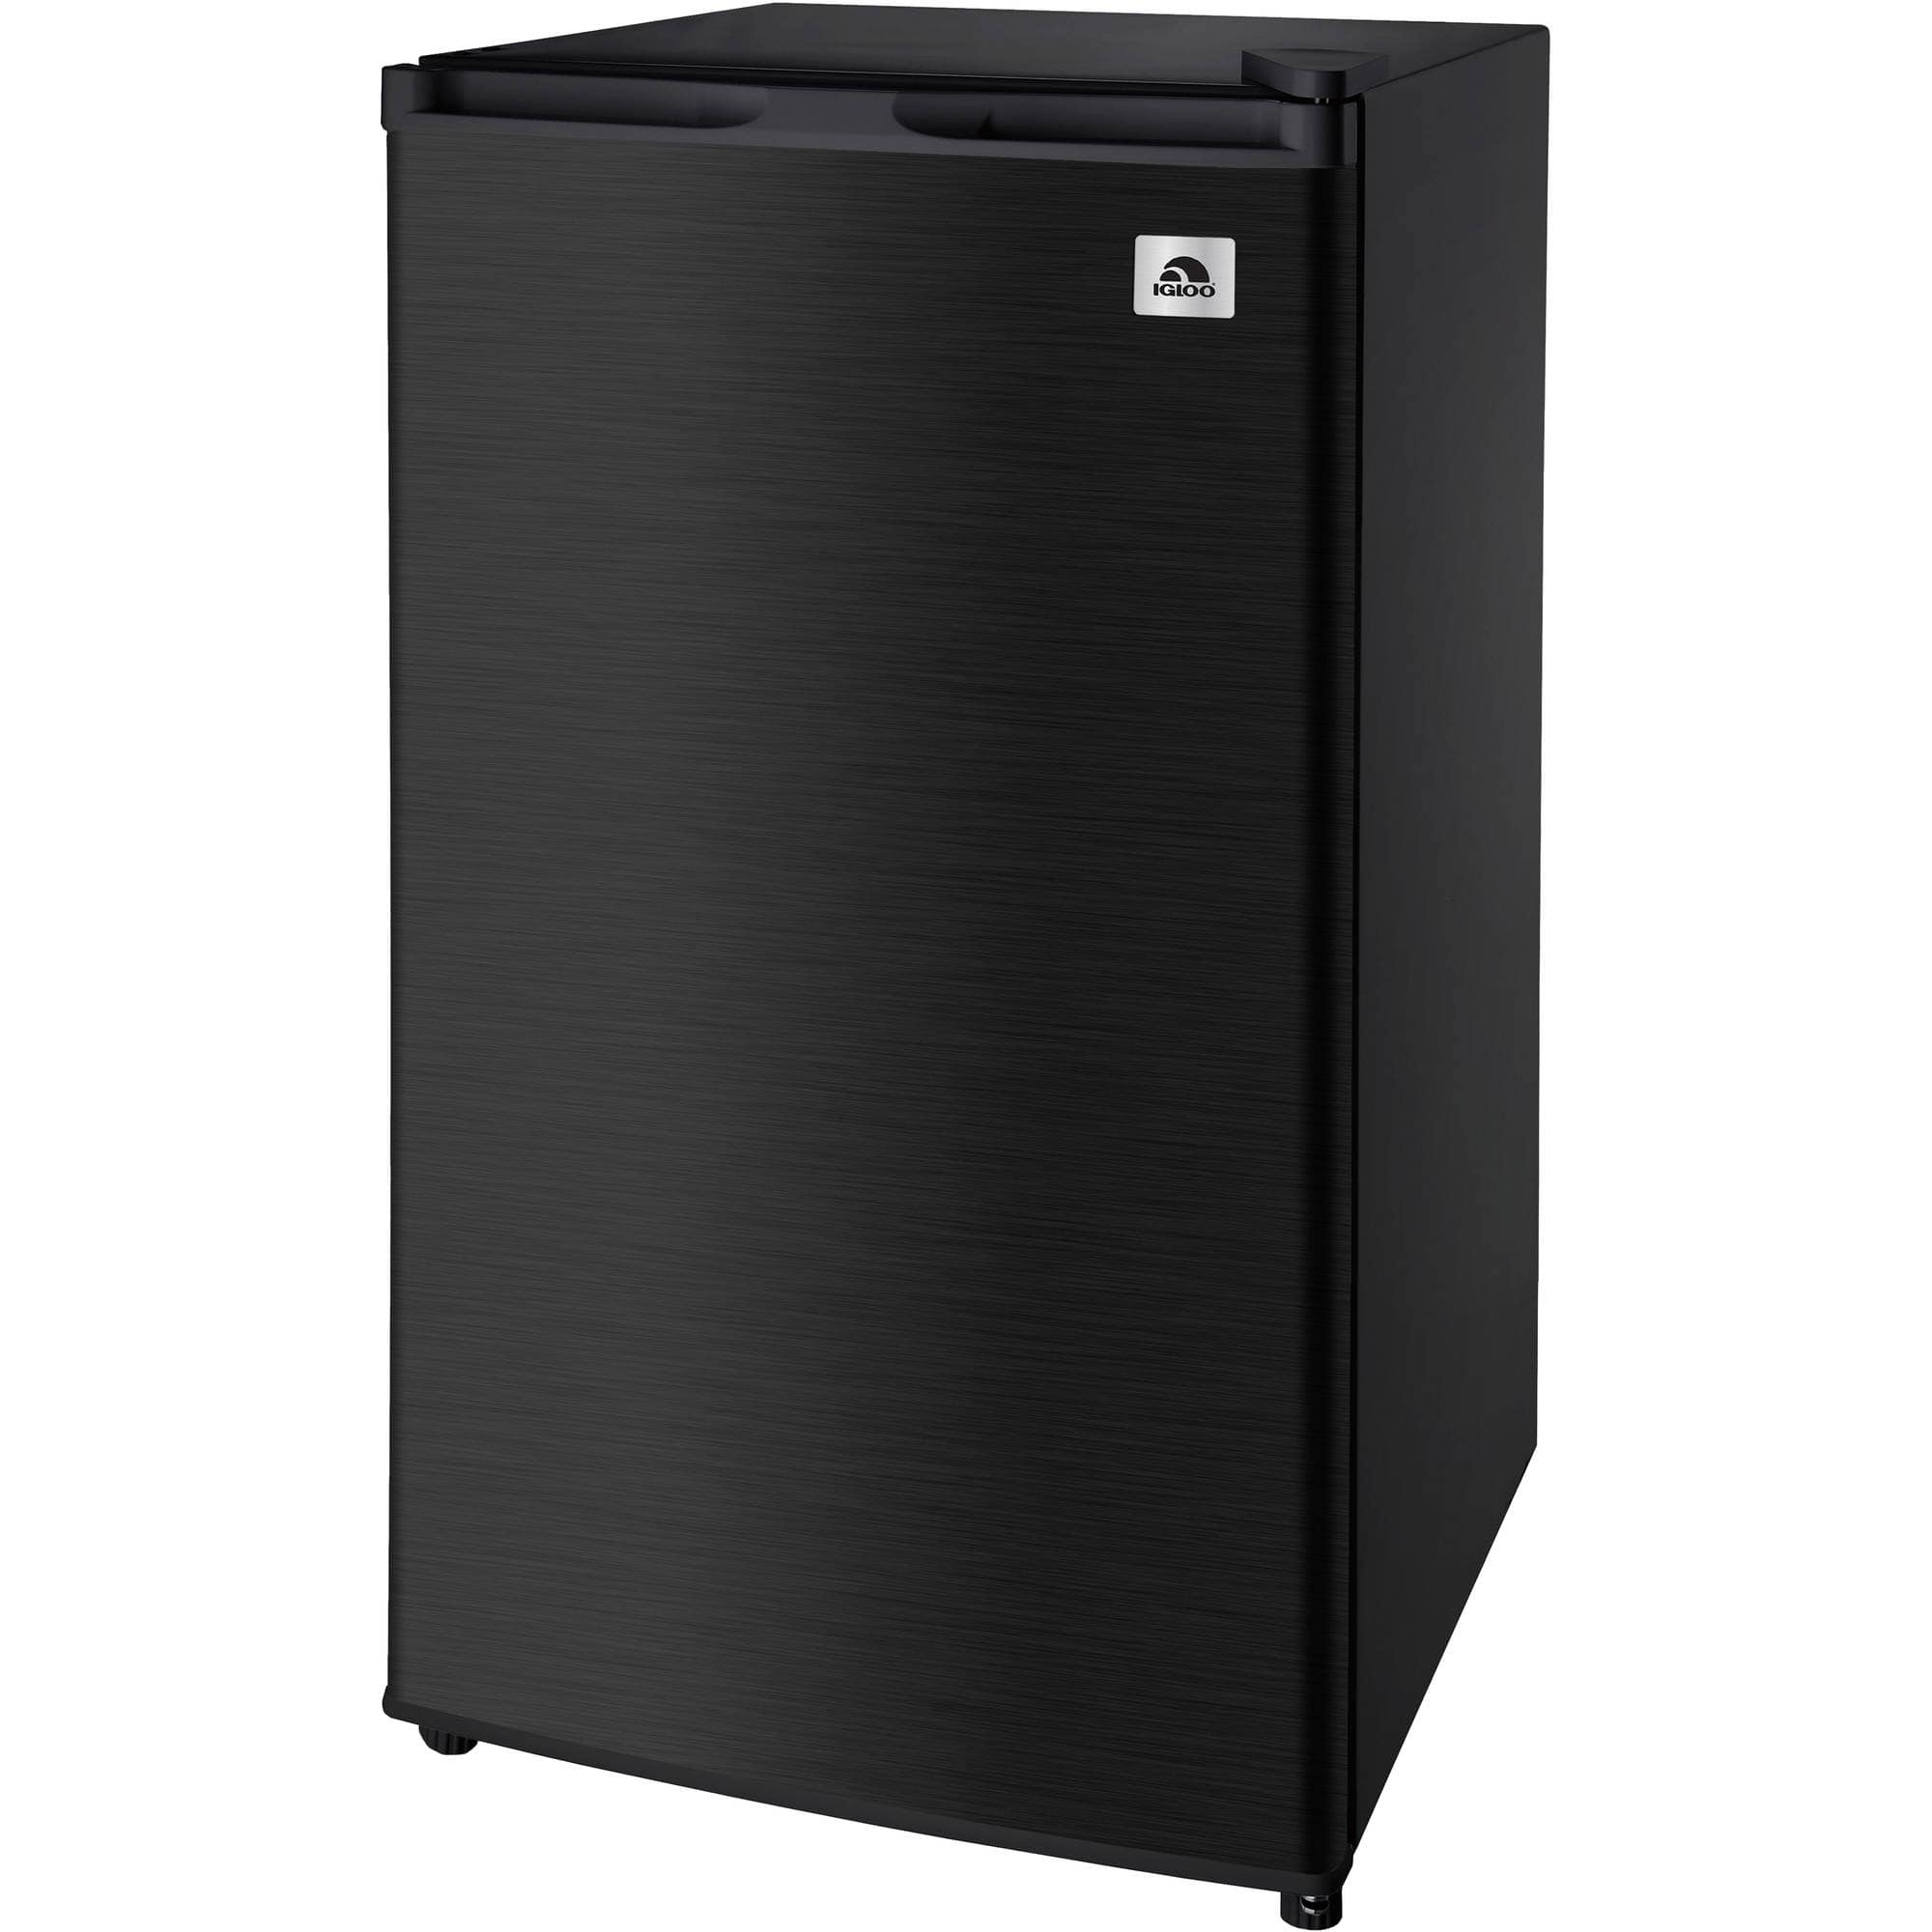 IGLOO 3 2 cu ft Stainless Steel Refrigerator Black Slickdeals